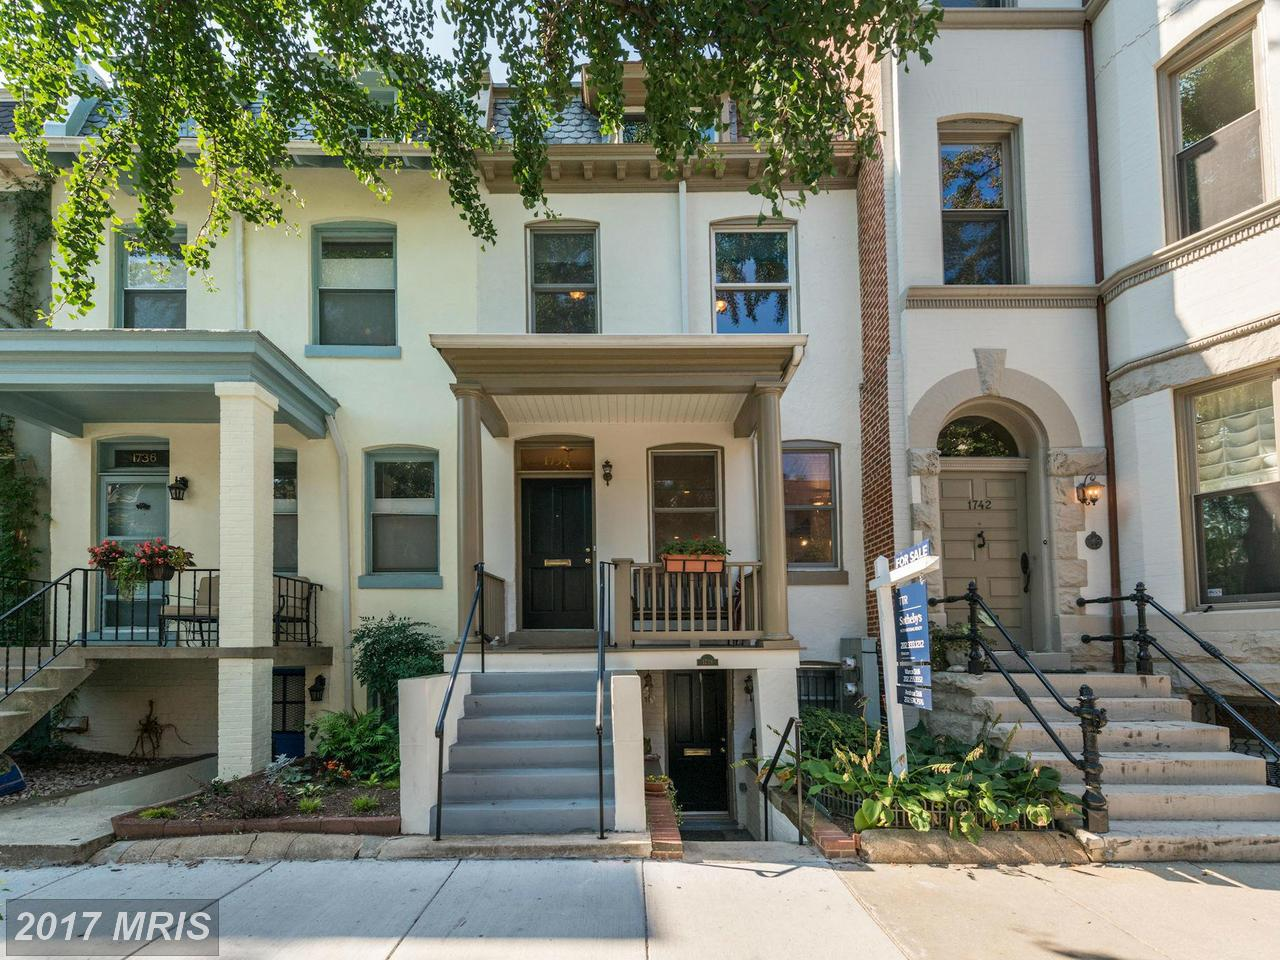 Single Family Home for Sale at Colonial, Attach/Row Hse - WASHINGTON, DC 1738 SWANN ST NW Washington, District Of Columbia,20009 United States